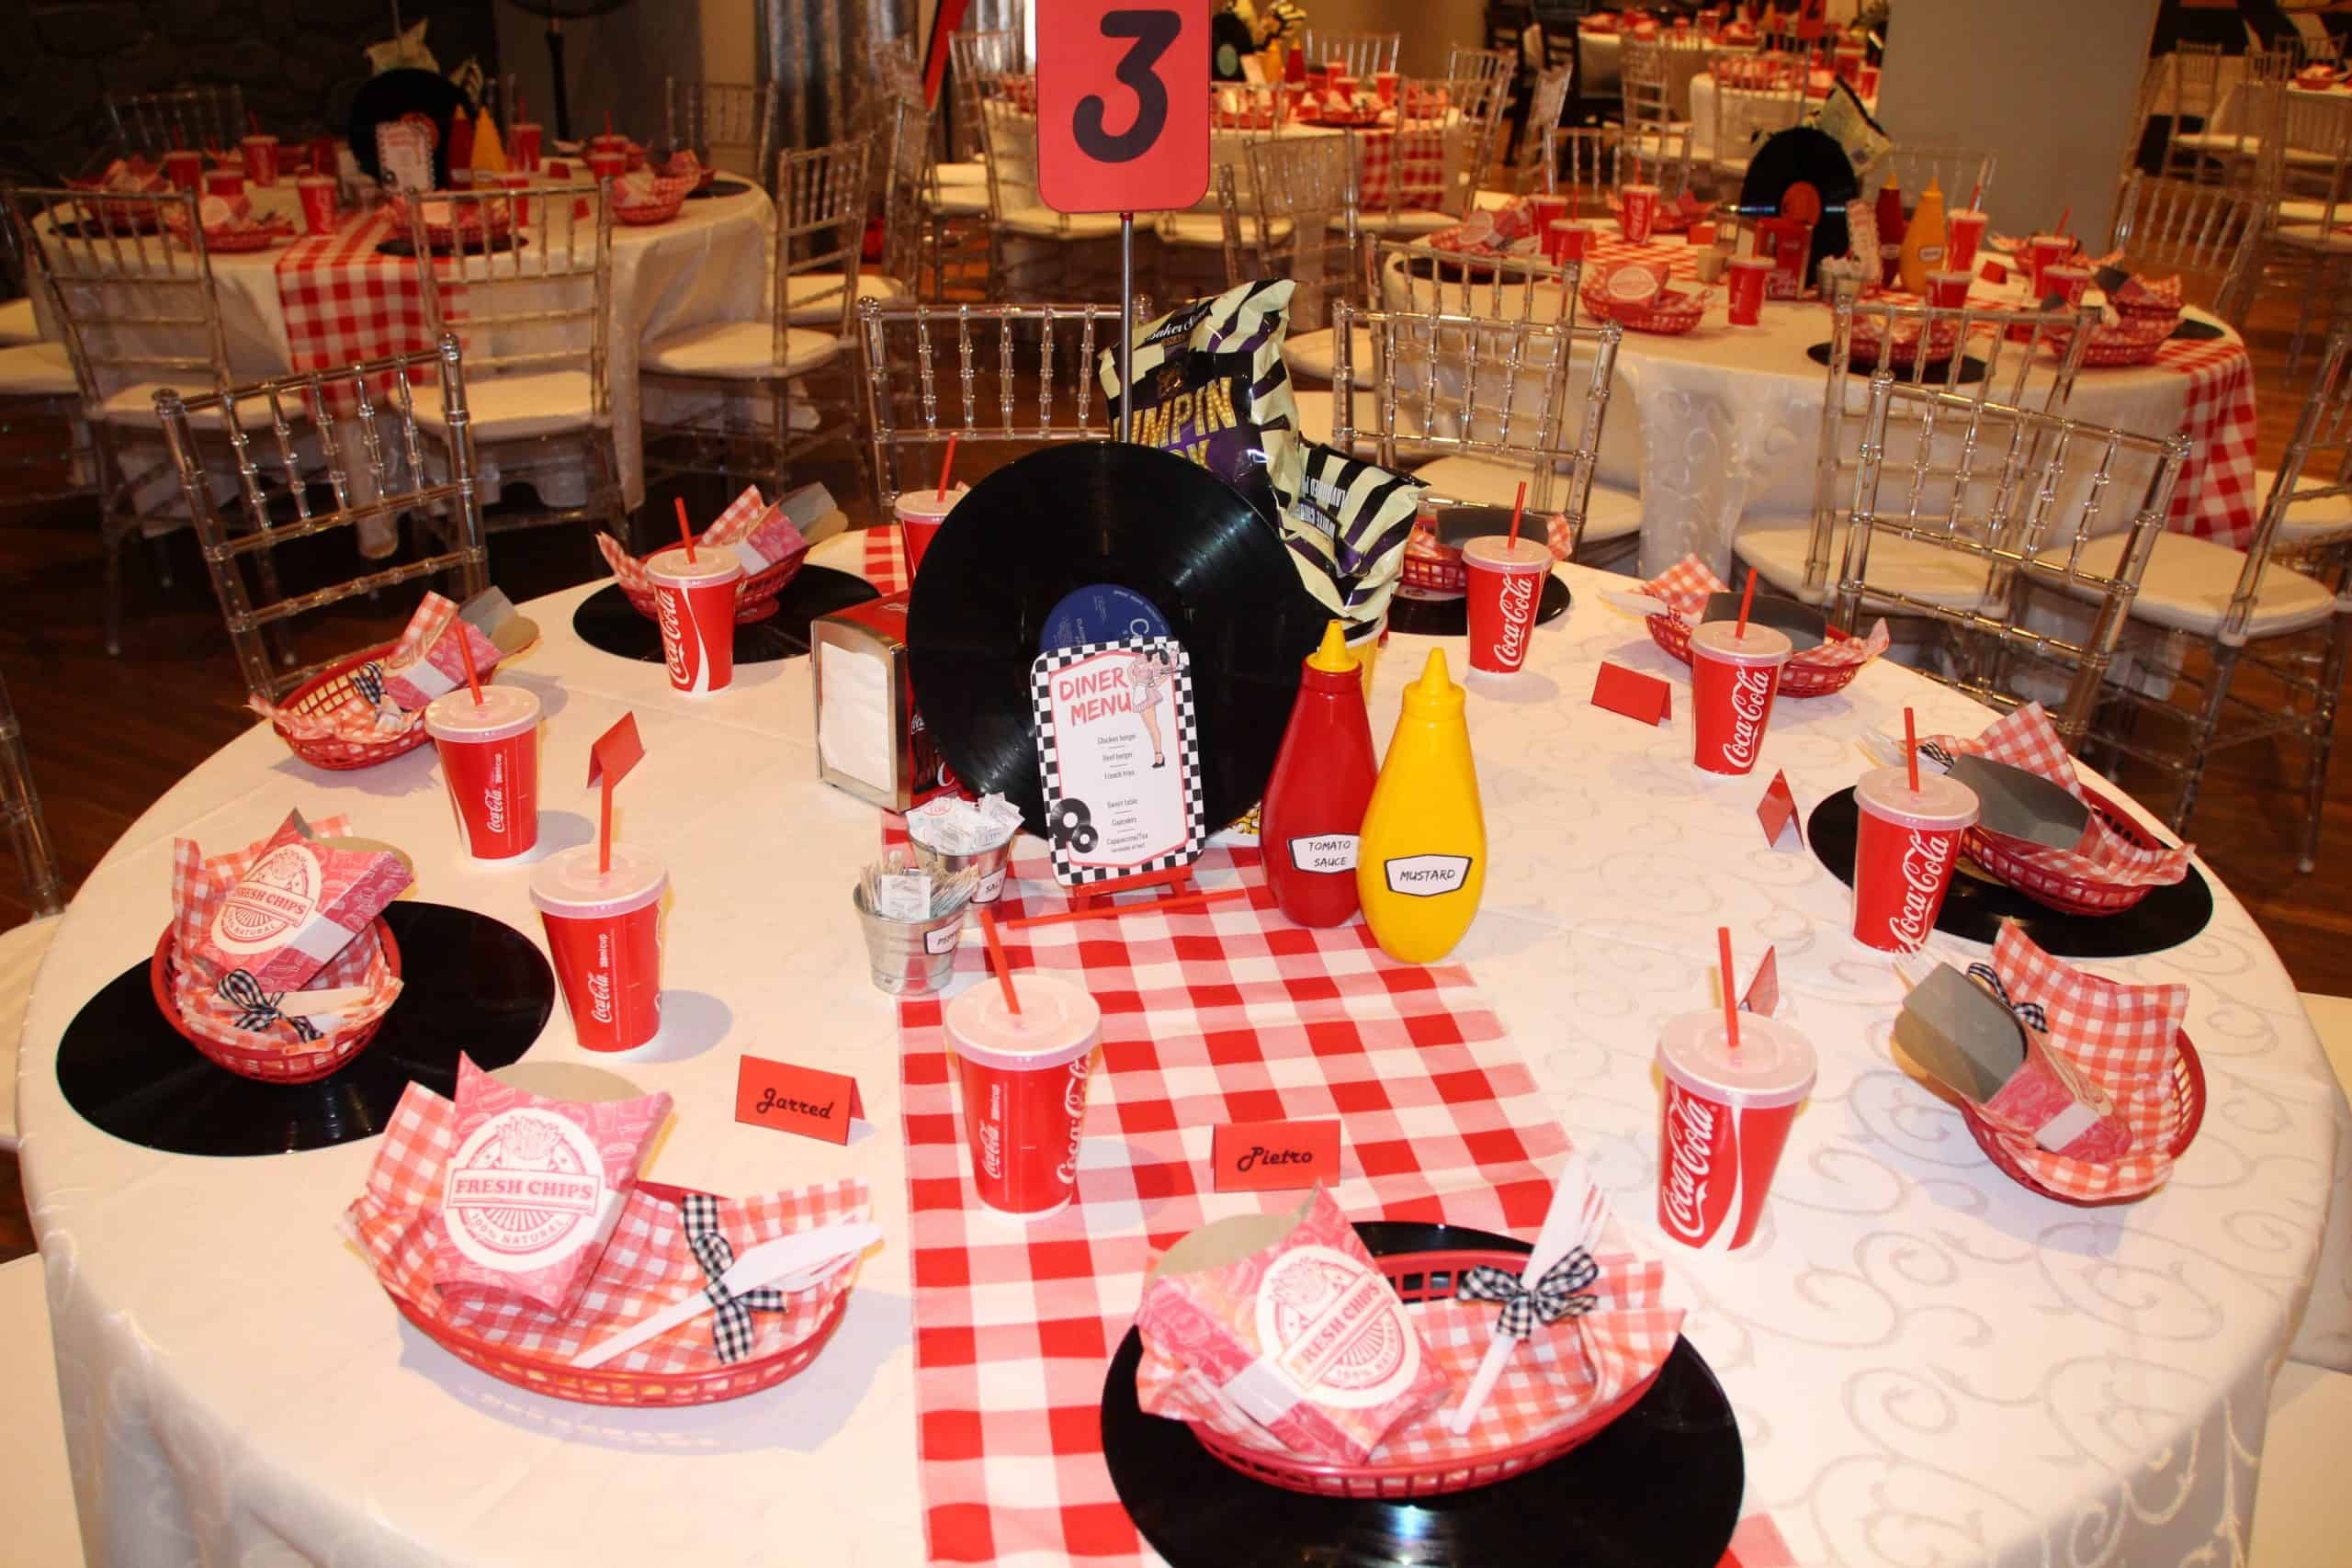 rock and roll party with red and white overlay scaled